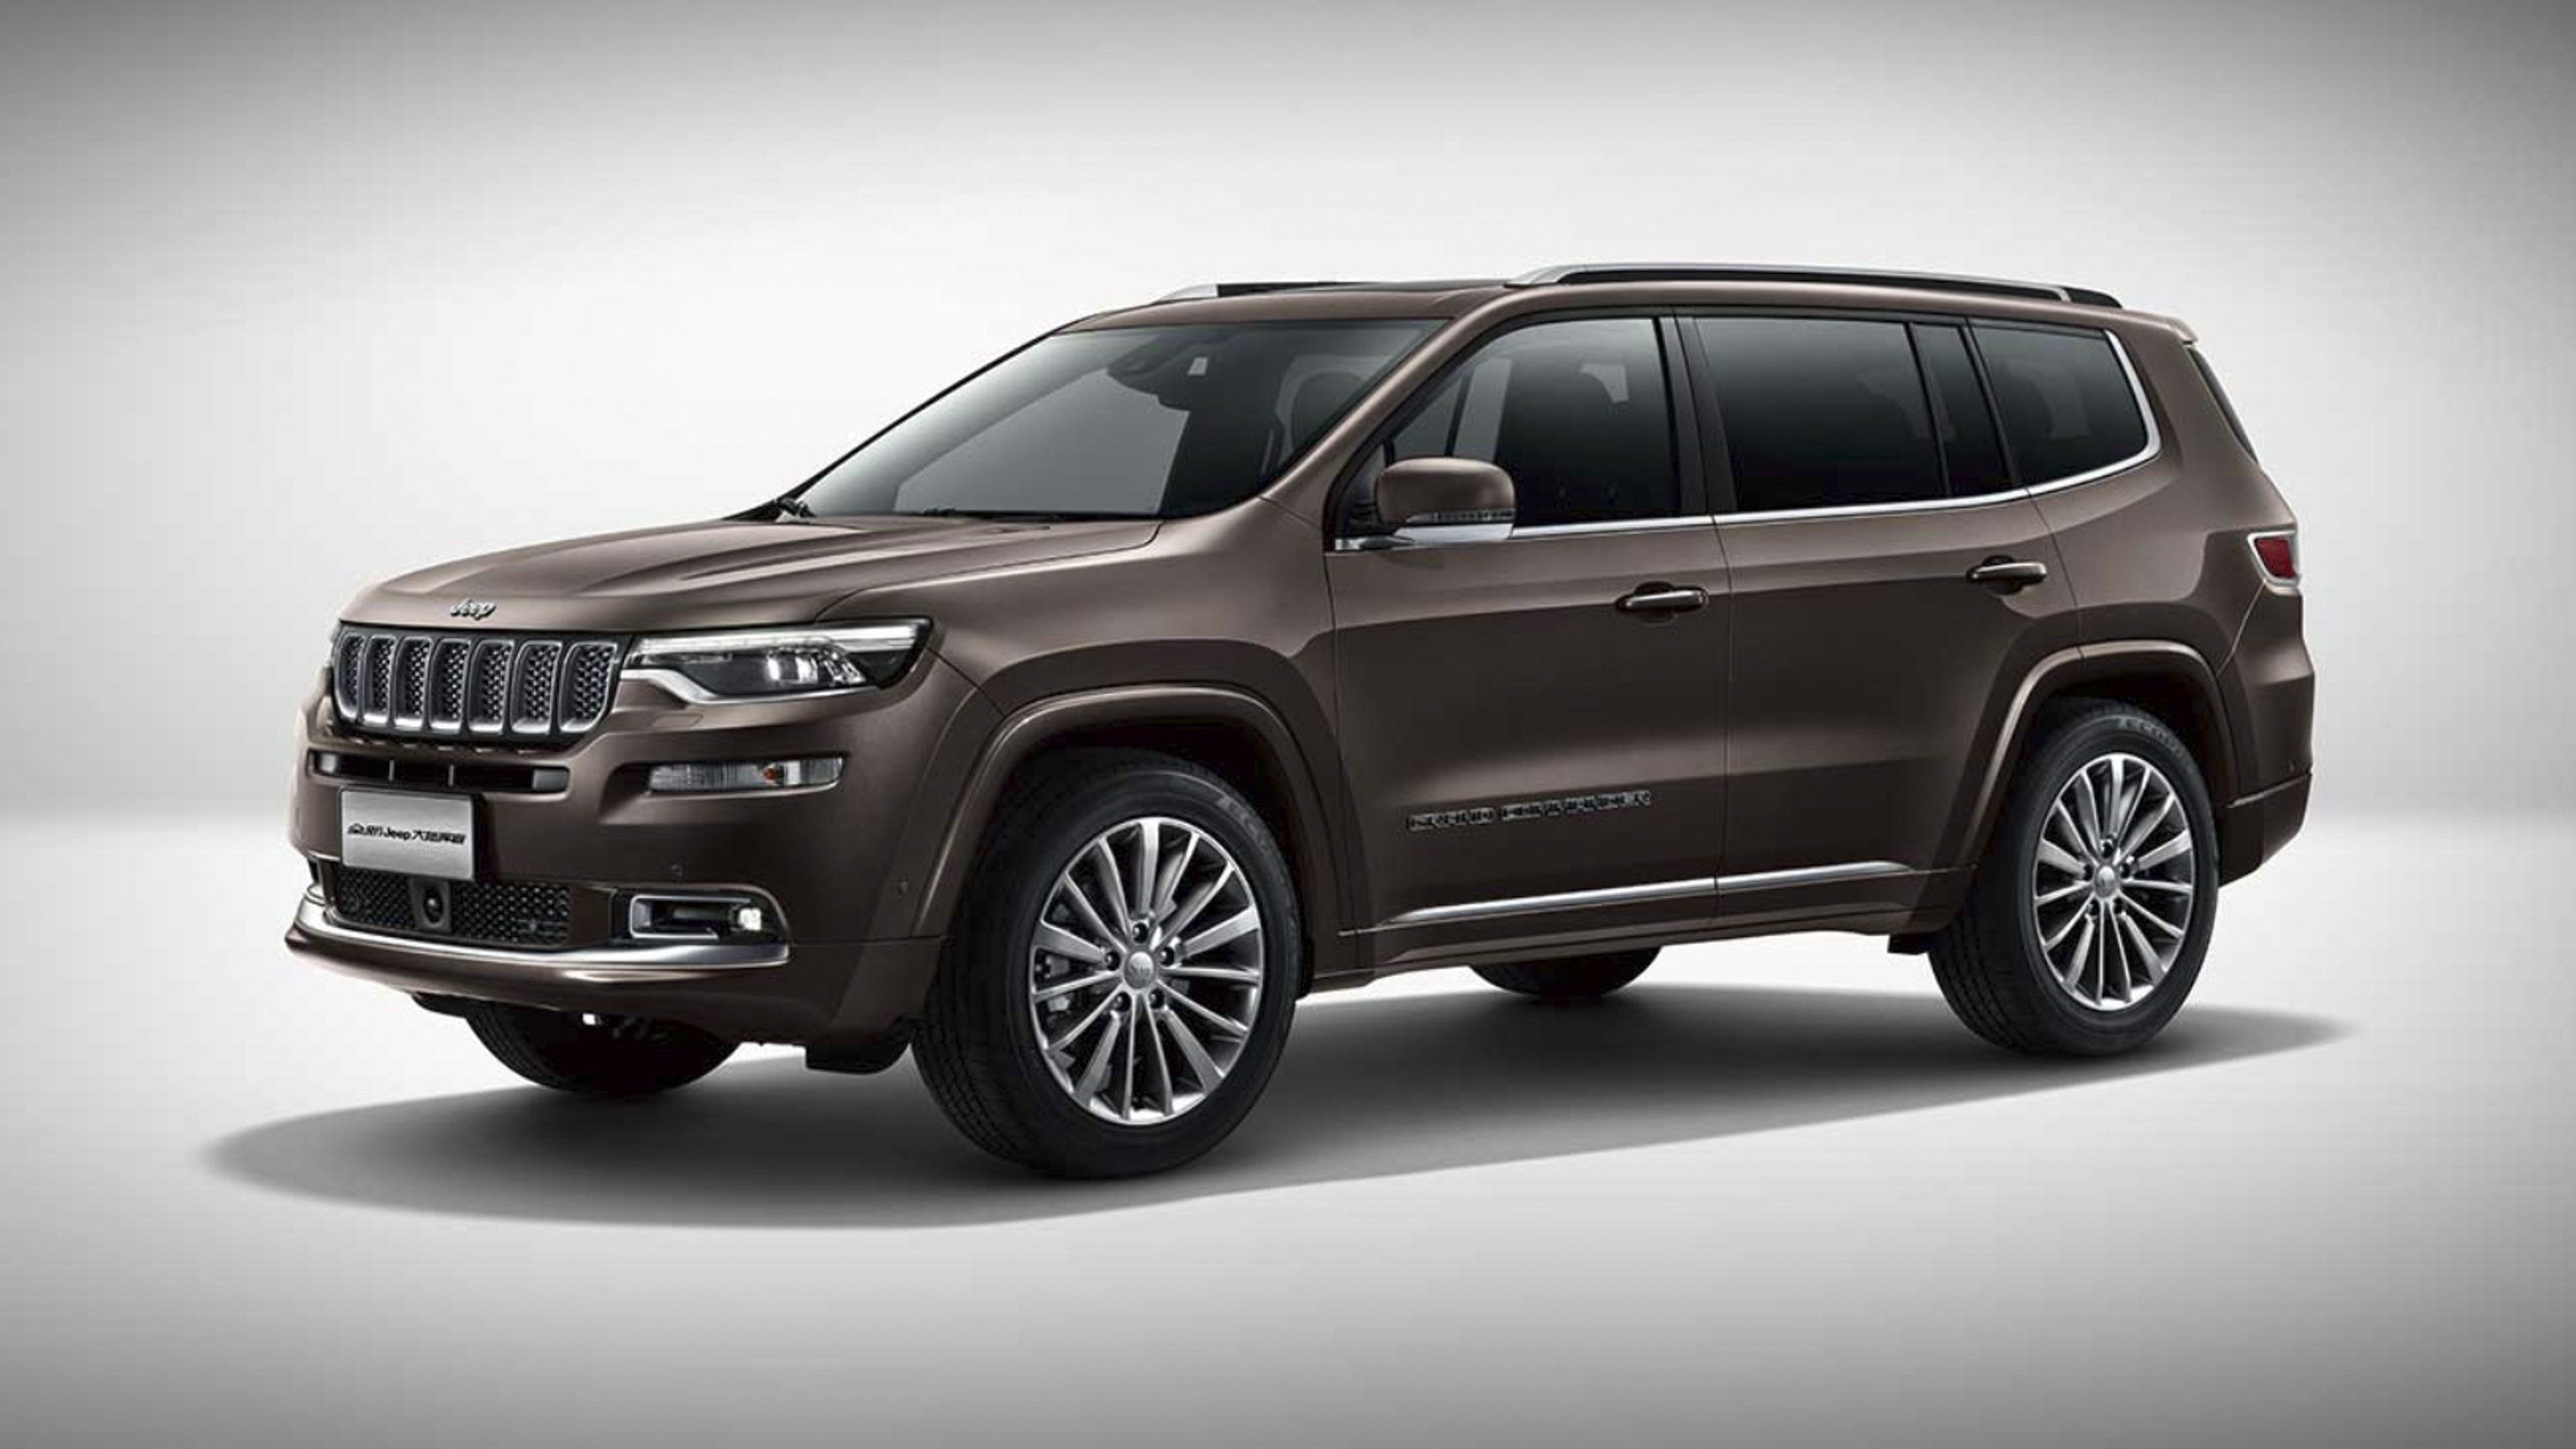 Fca Set To Bring Back The Journey Name But It Ll Be A Rebadged Jeep Wearing A Chrysler Badge 7 Seater Suv Jeep Jeep Grand